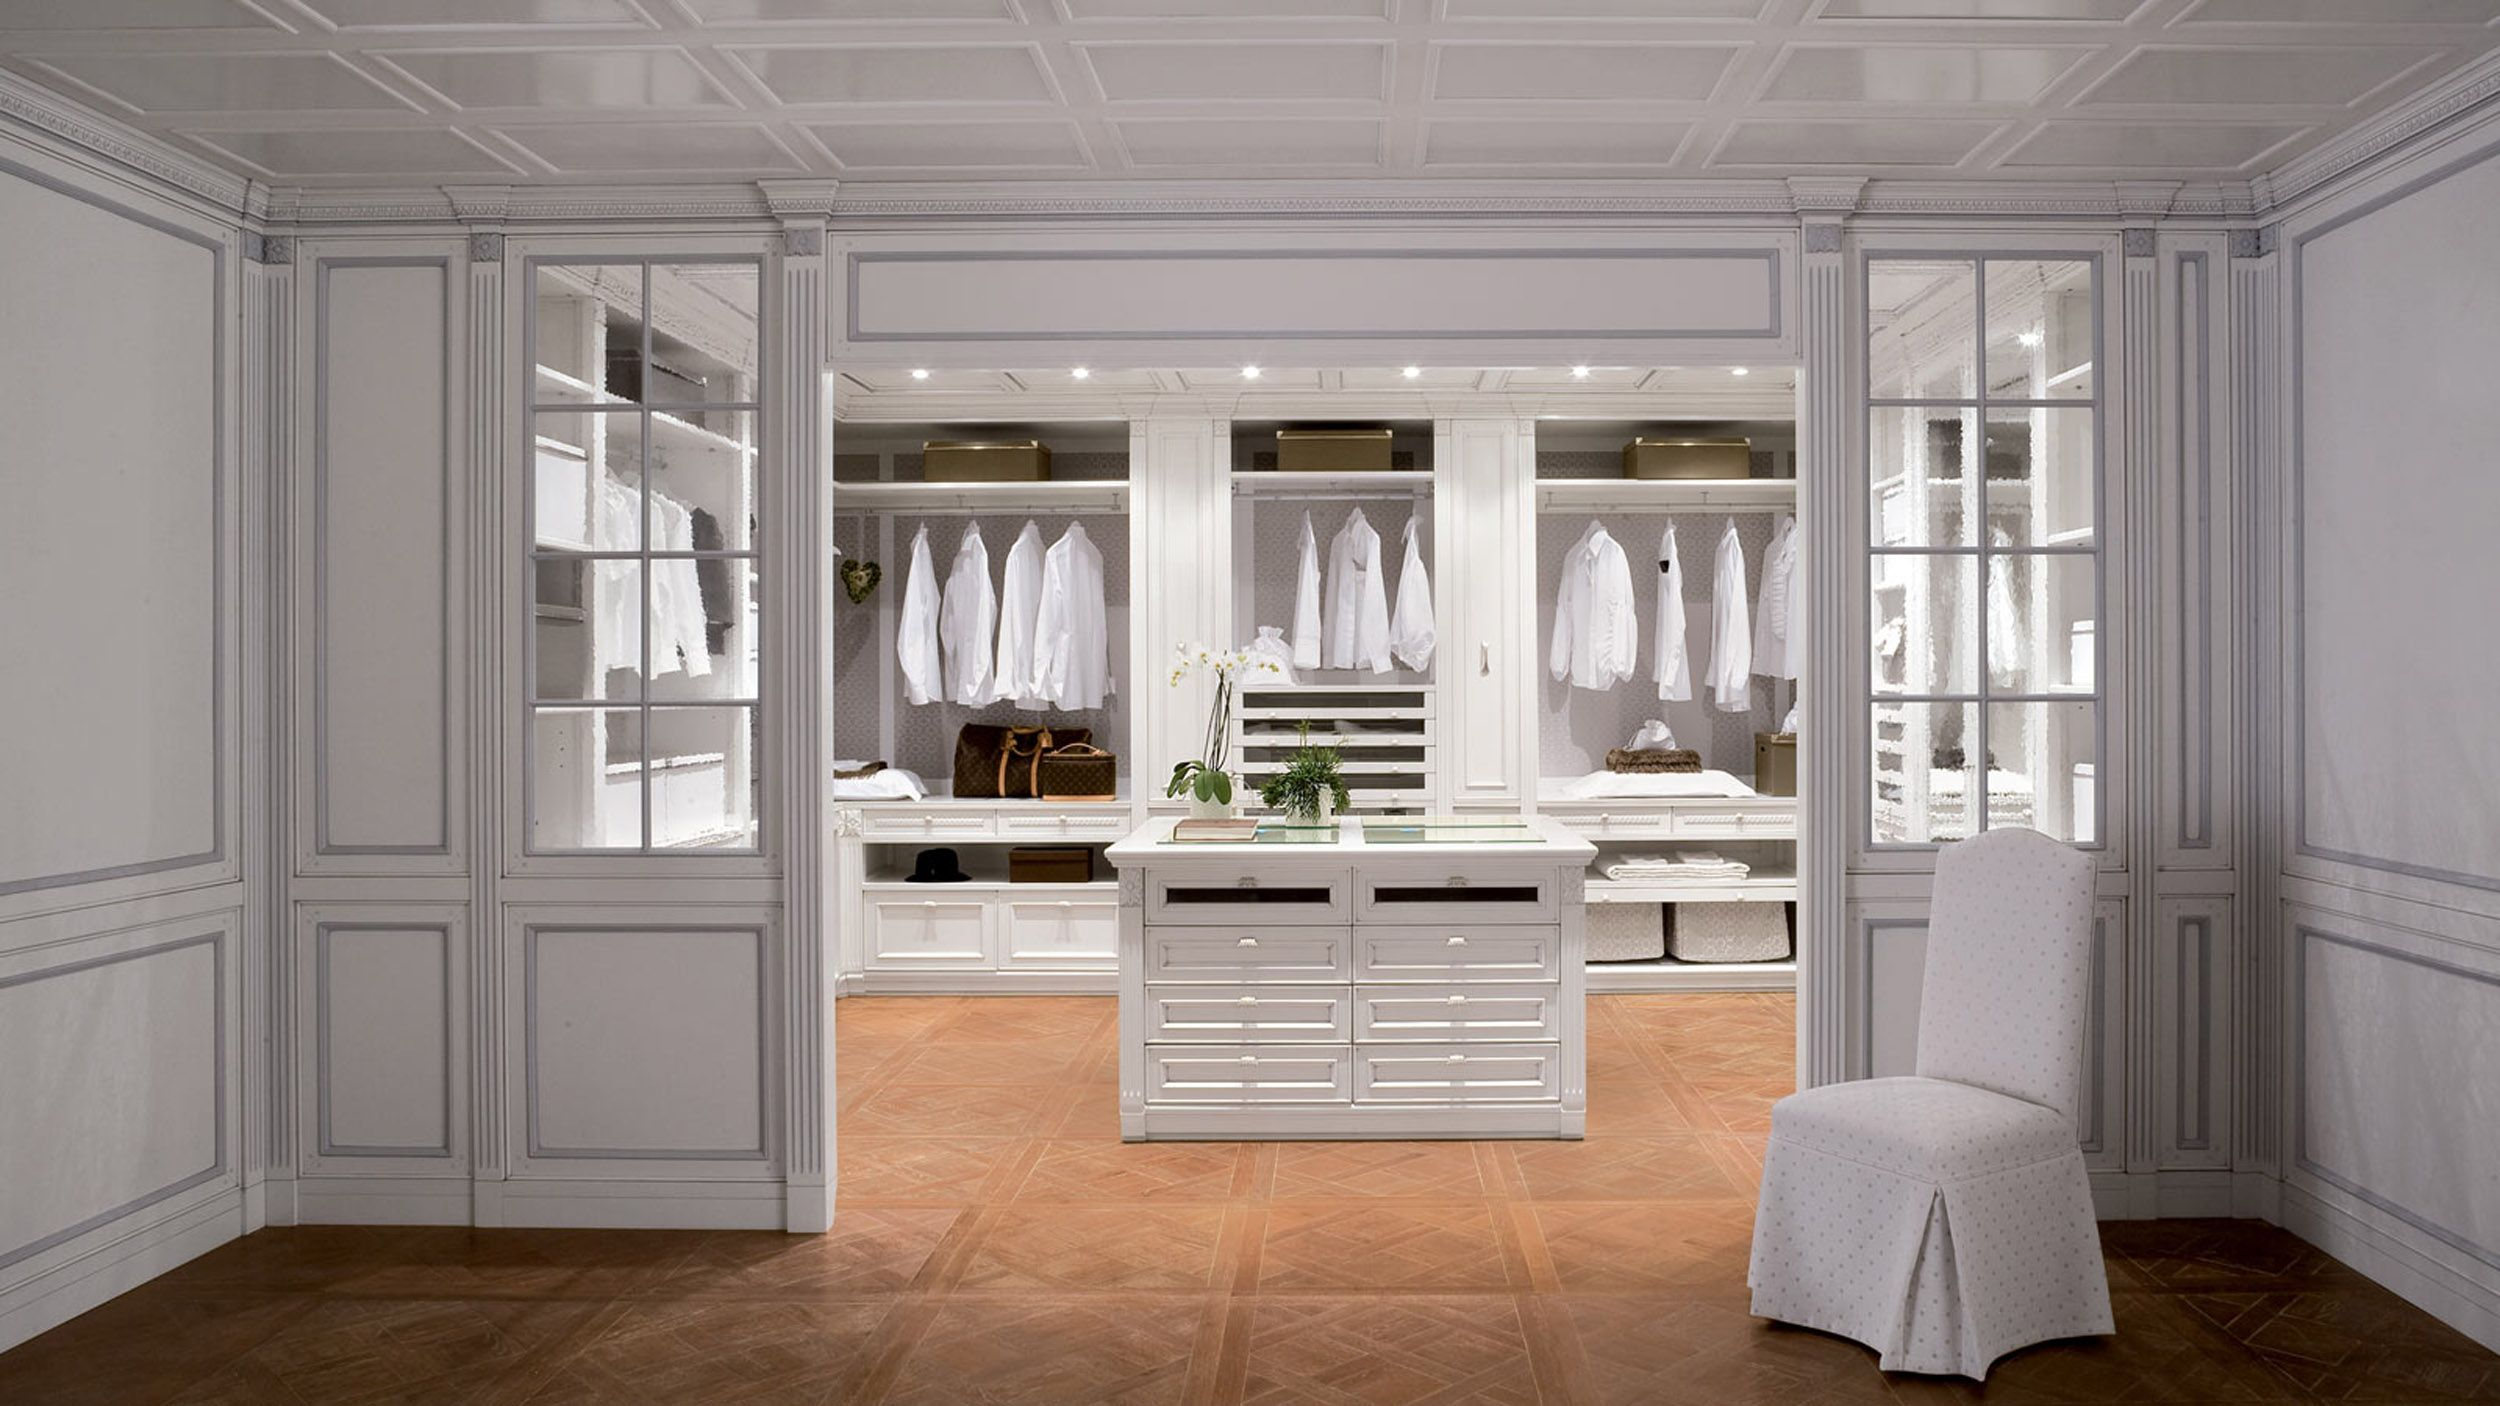 Best Bedroom Minimalist White Walk In Closet Design With Wooden 400 x 300